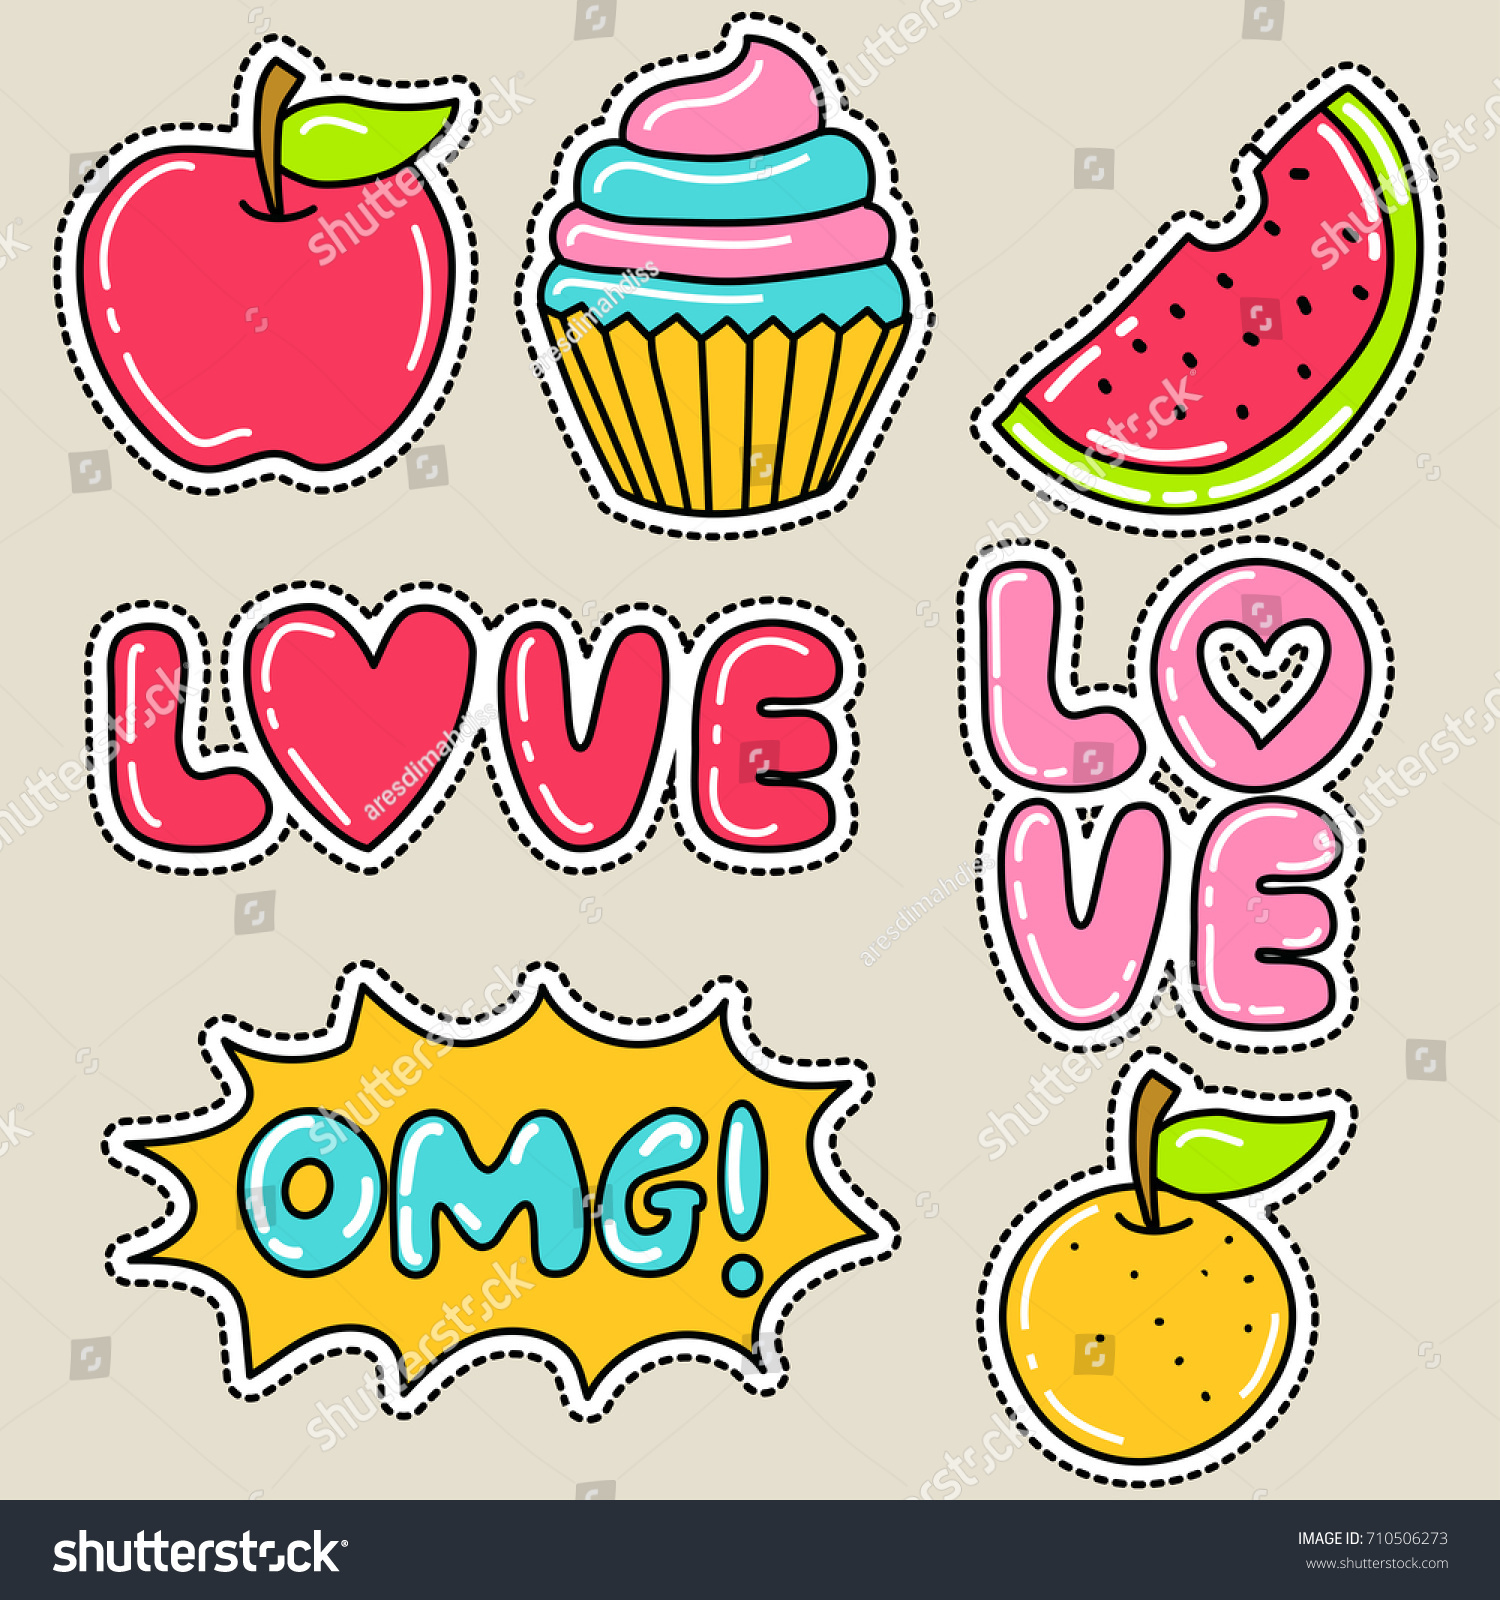 Love cupcake and watermelon patch design cute girly sticker patch design series